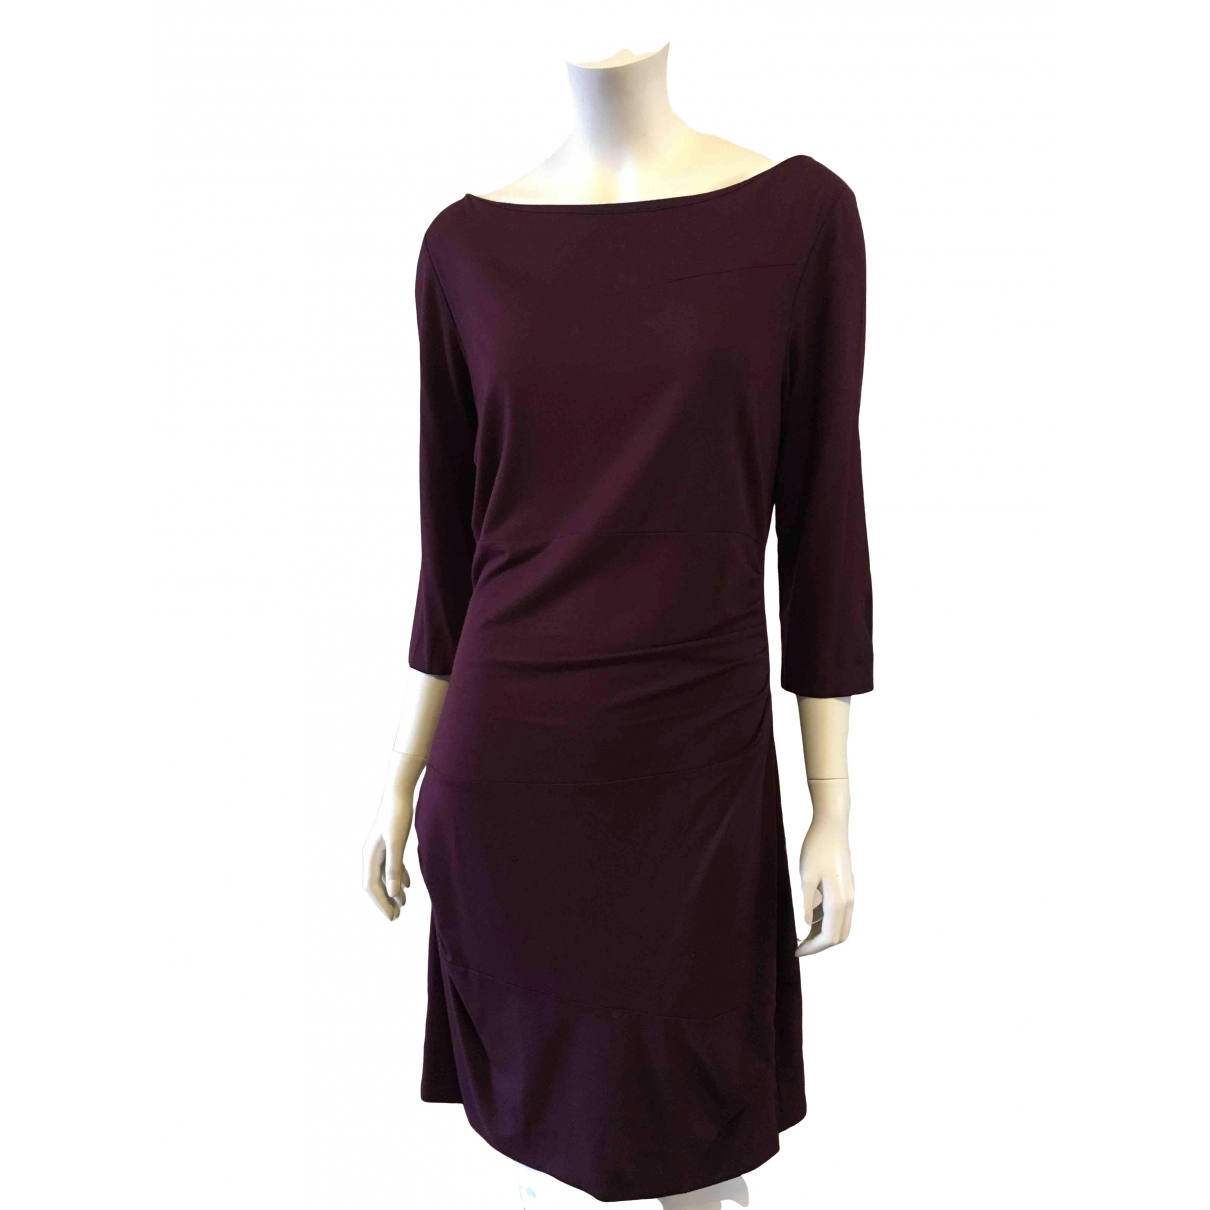 Diane Von Furstenberg \N Purple dress for Women 14-16 US